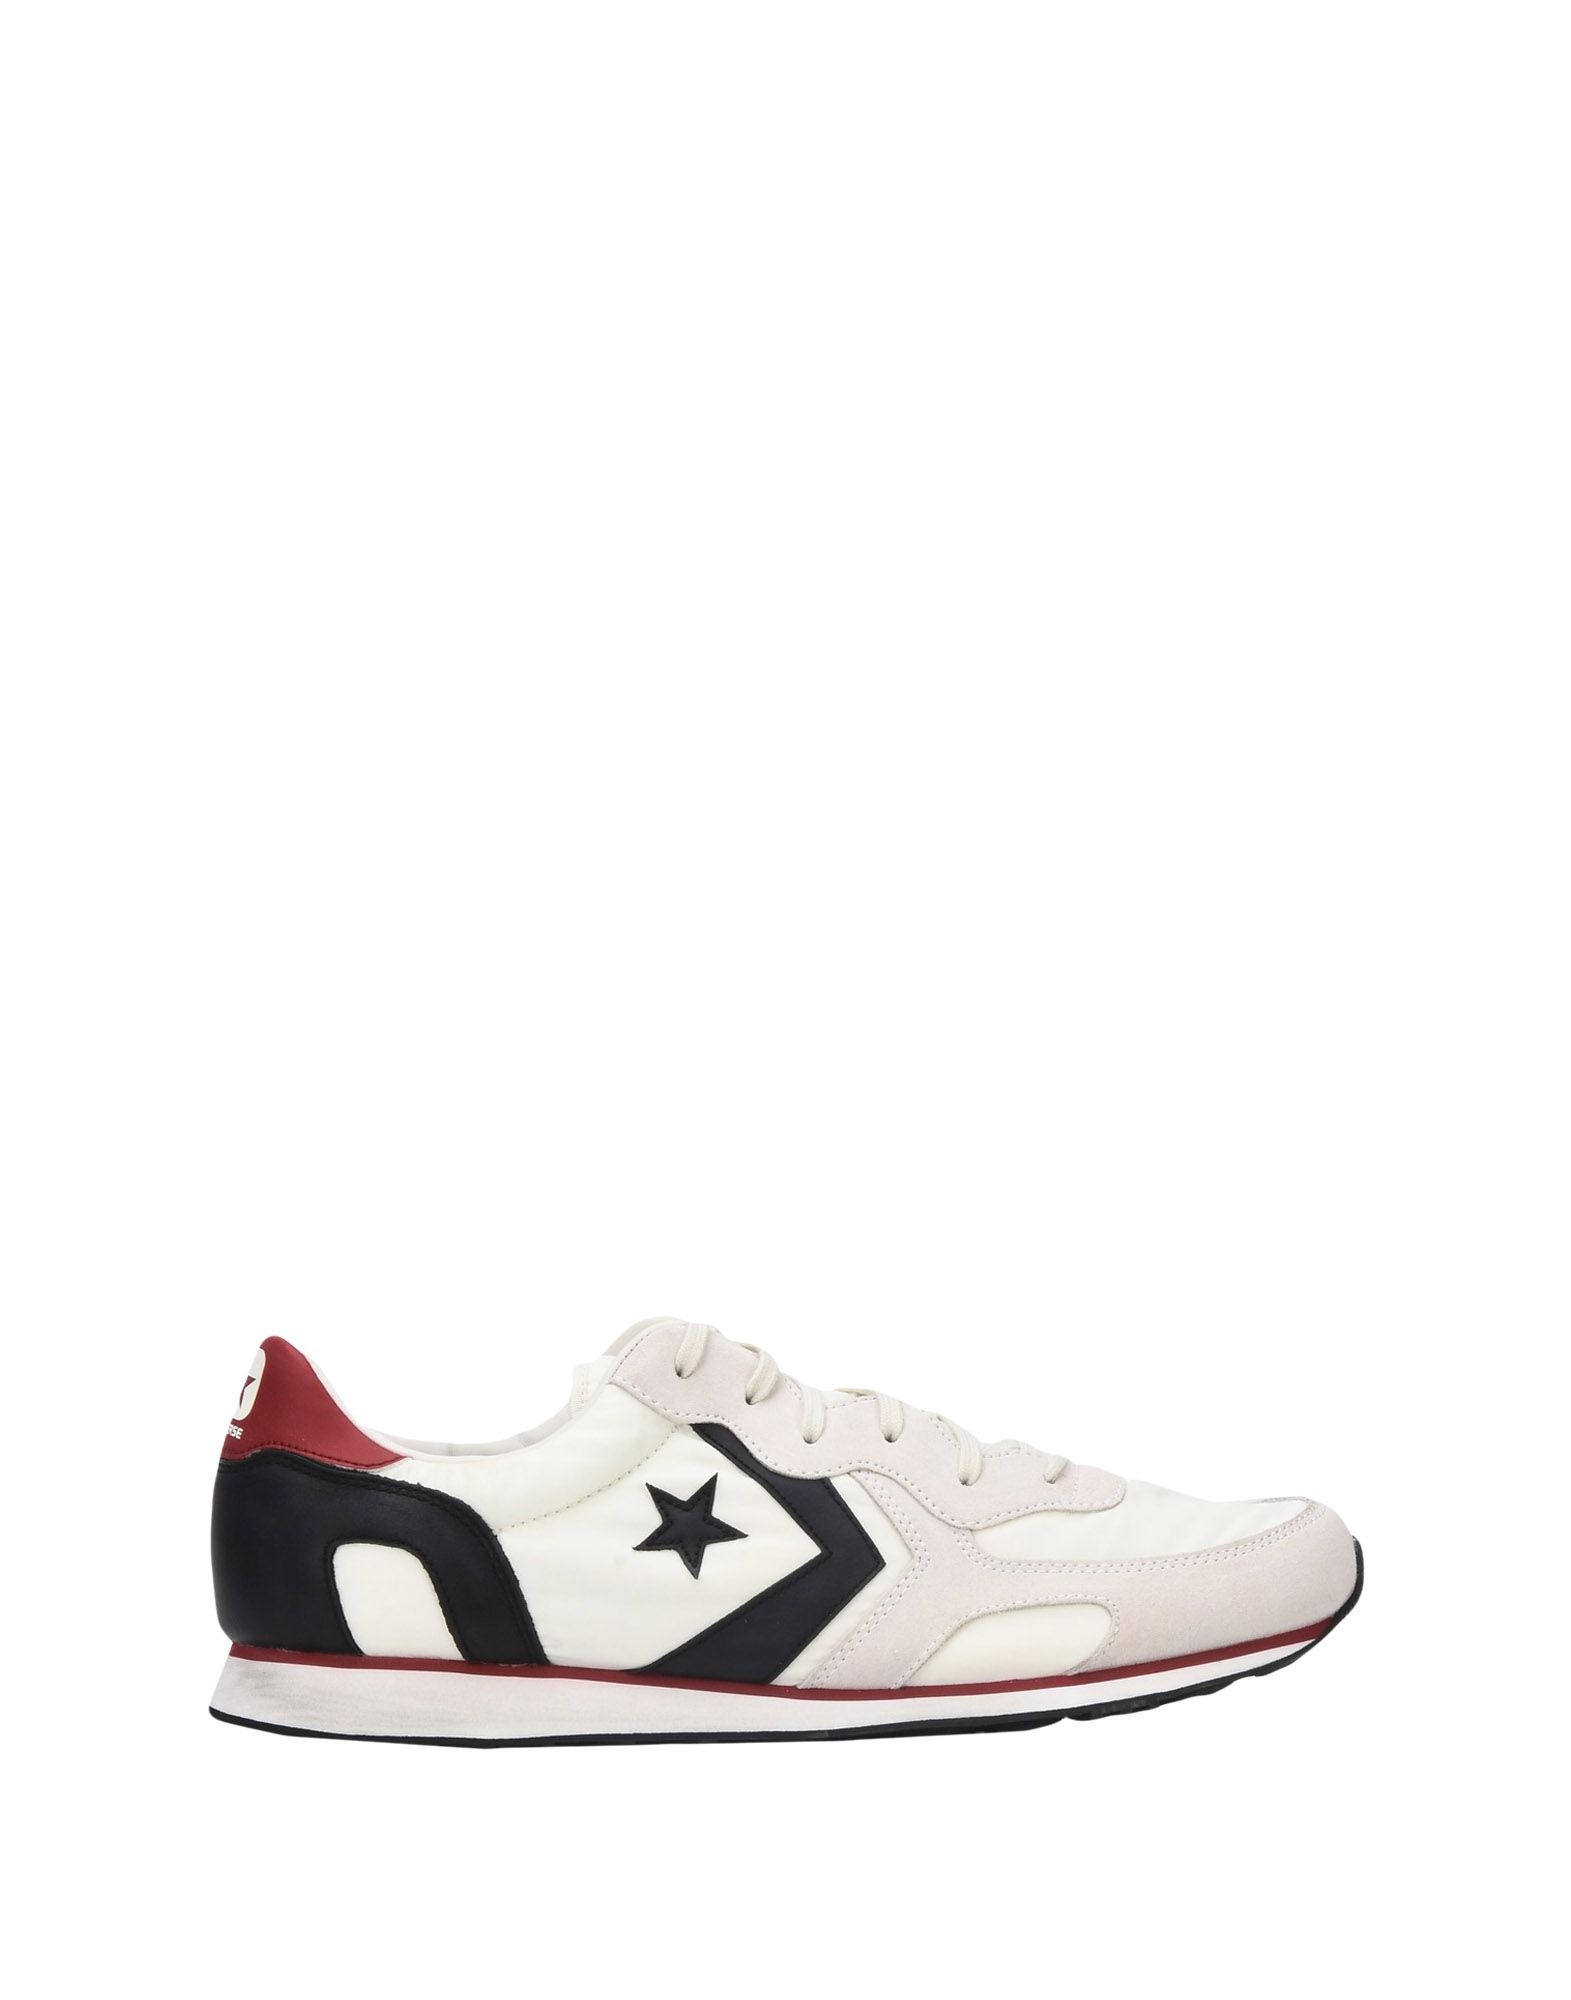 ... Sneakers Converse Cons Auckland Racer Ox Wrinkle Nylon/Suede Distressed  - Homme - Sneakers Converse ...